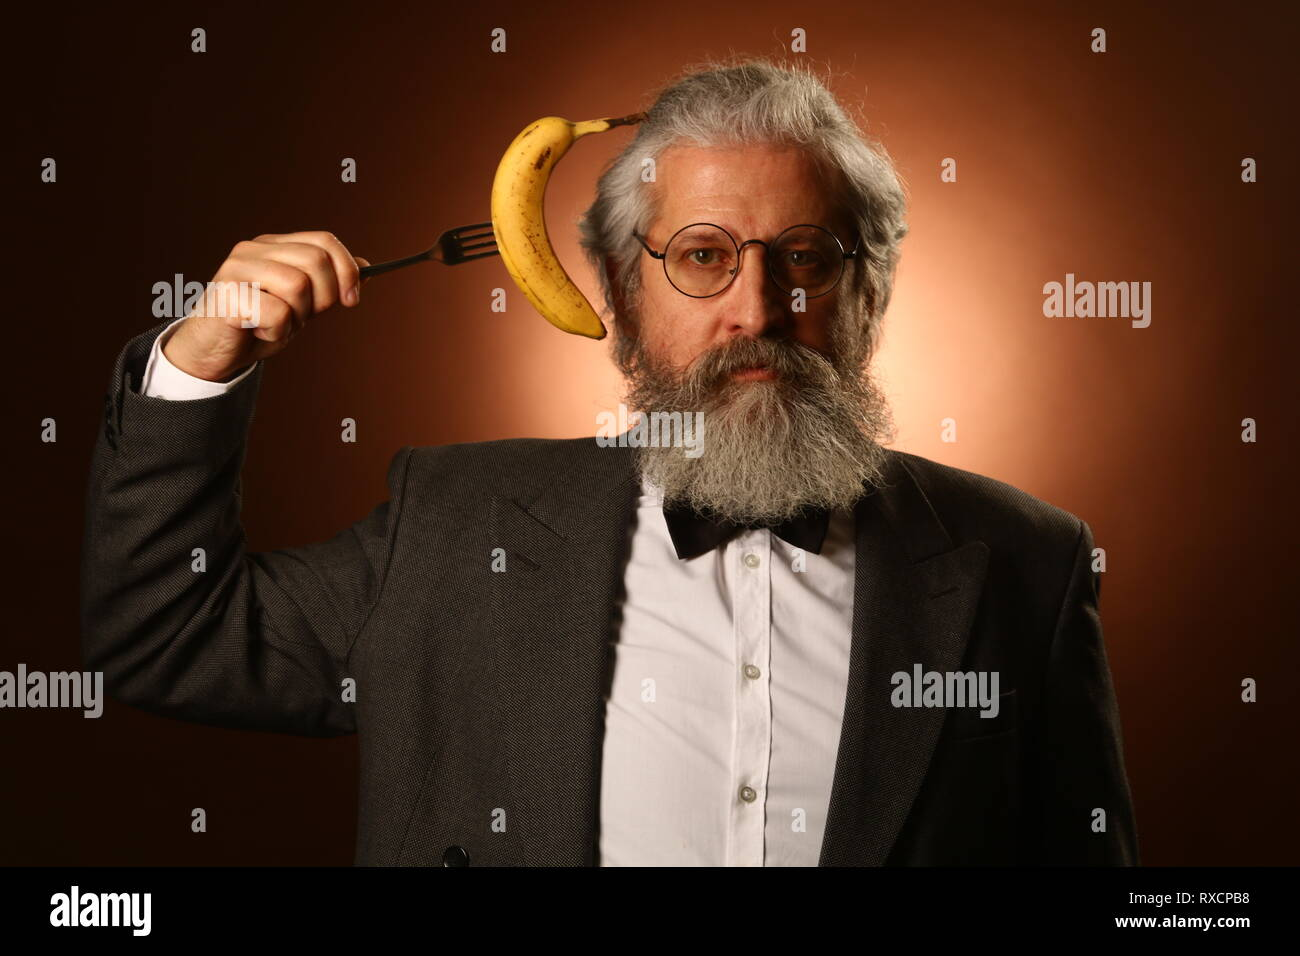 b49606b5a Portrait of a gray-haired elderly gentleman, with a shaggy mustache and  beard,